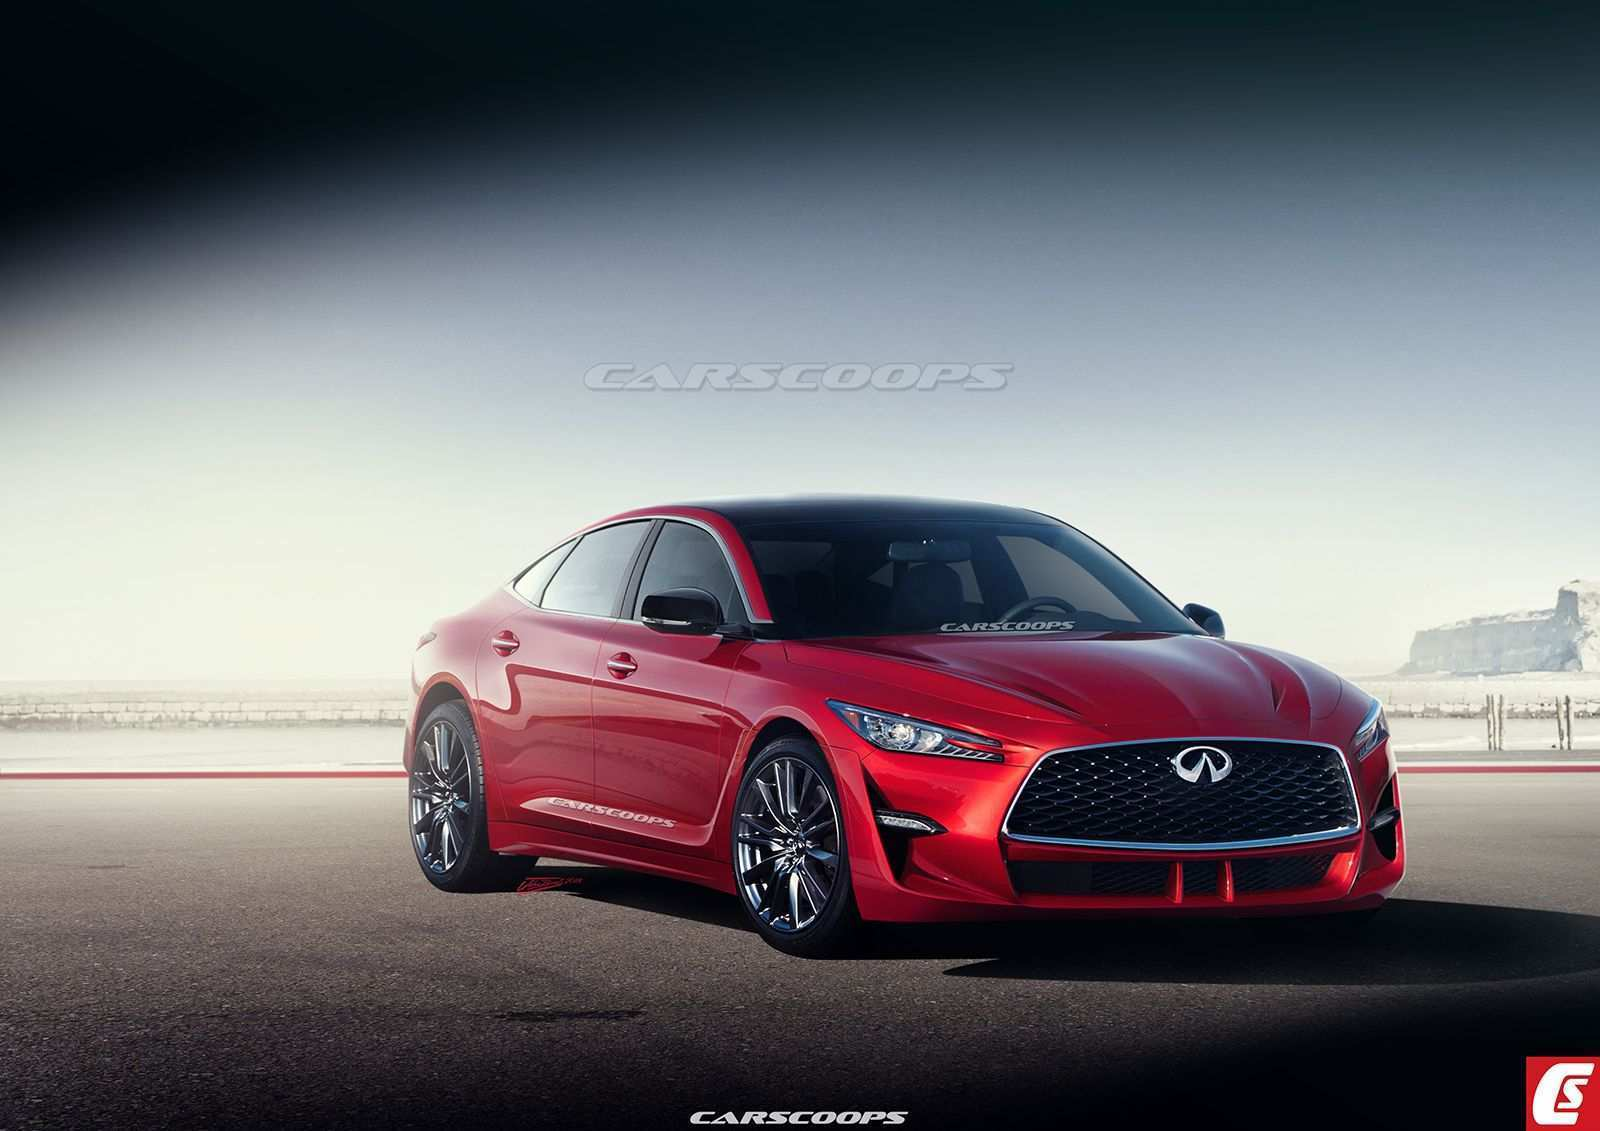 26 Great 2020 Infiniti Q50 Horsepower Rumors by 2020 Infiniti Q50 Horsepower